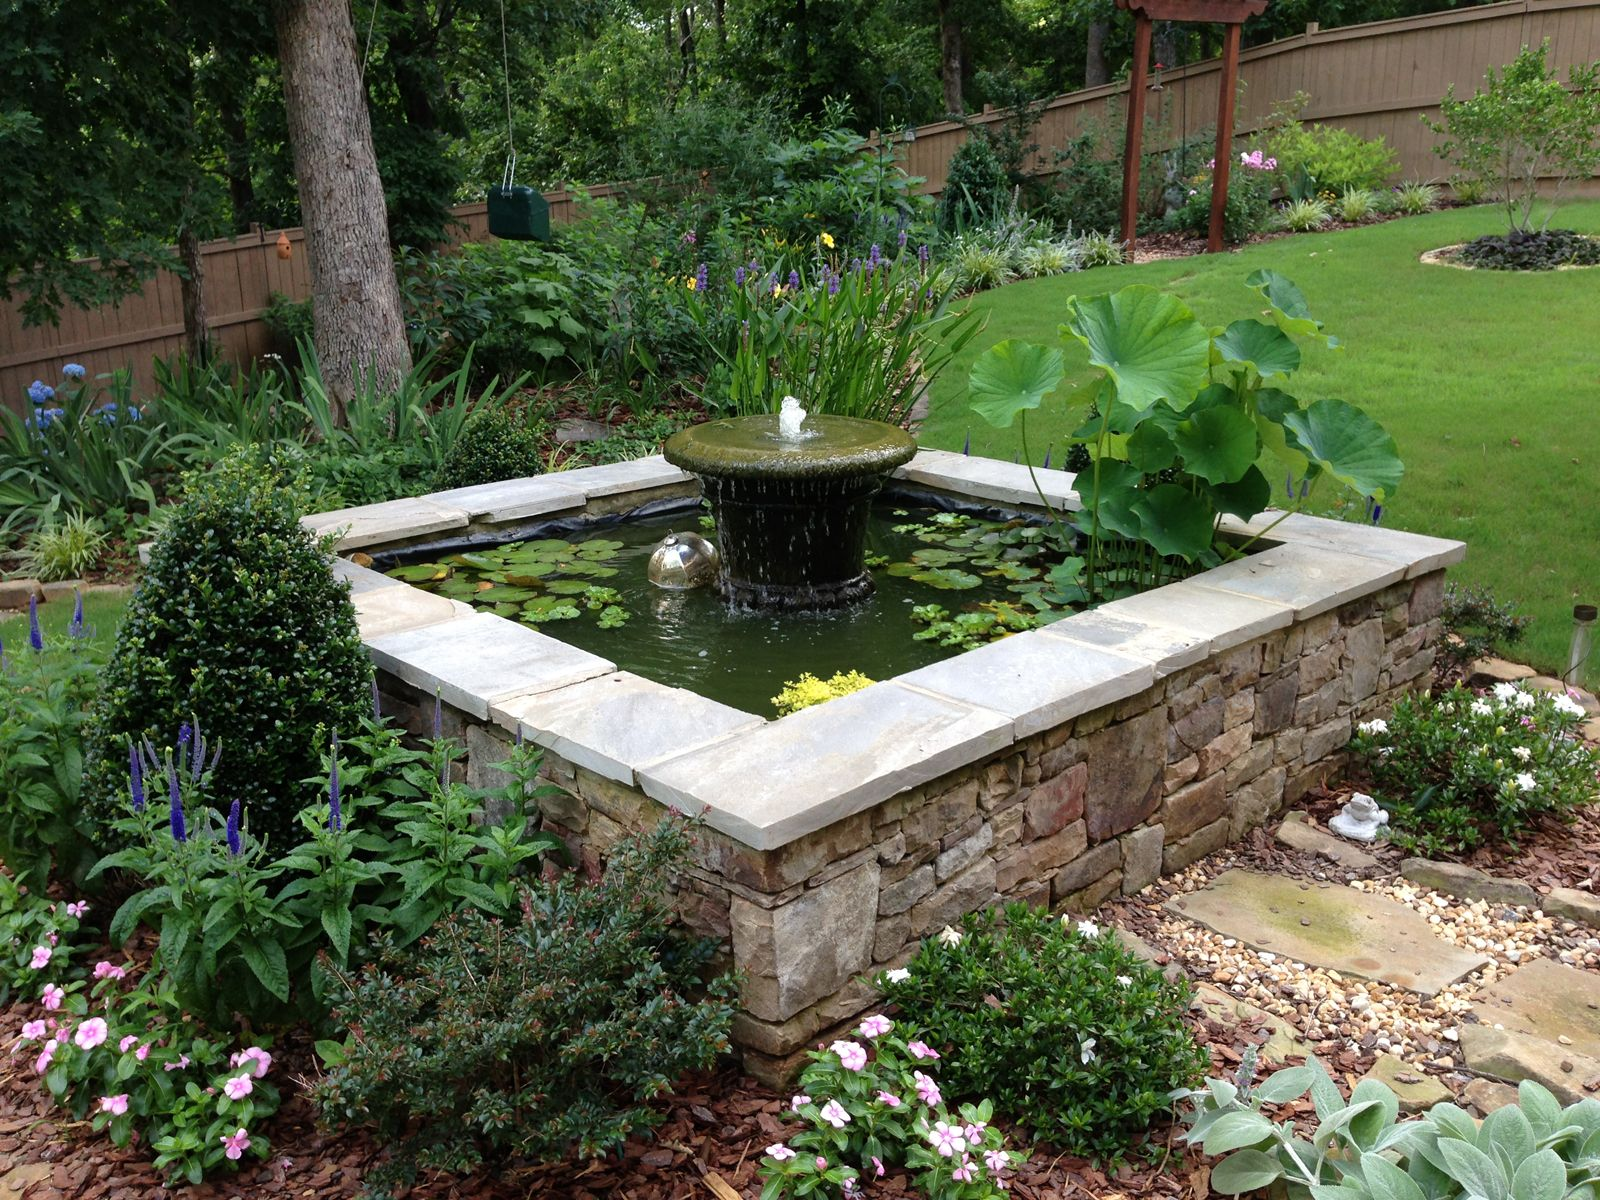 Square water pool carol bill 39 s garden in georgia for Square fish pond